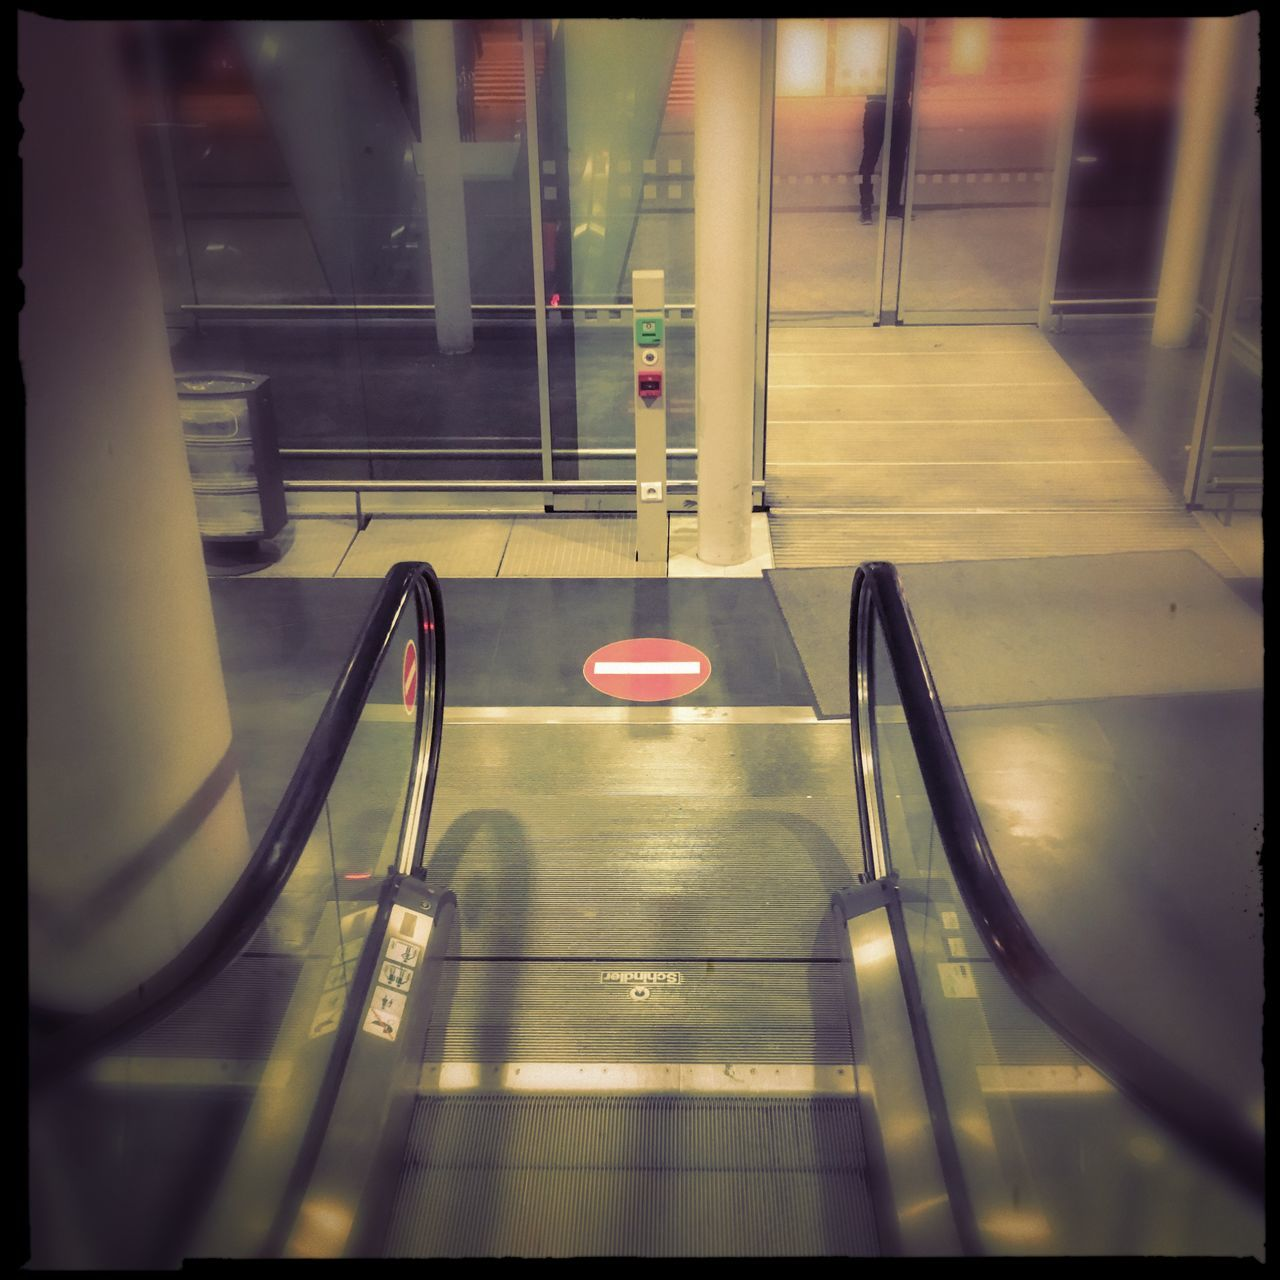 Absence Architecture Auto Post Production Filter Built Structure Empty Escalator High Angle View Illuminated Indoors  Motion No People On The Move Railing Reflection Staircase Steps Steps And Staircases The Way Forward Transfer Print Transportation